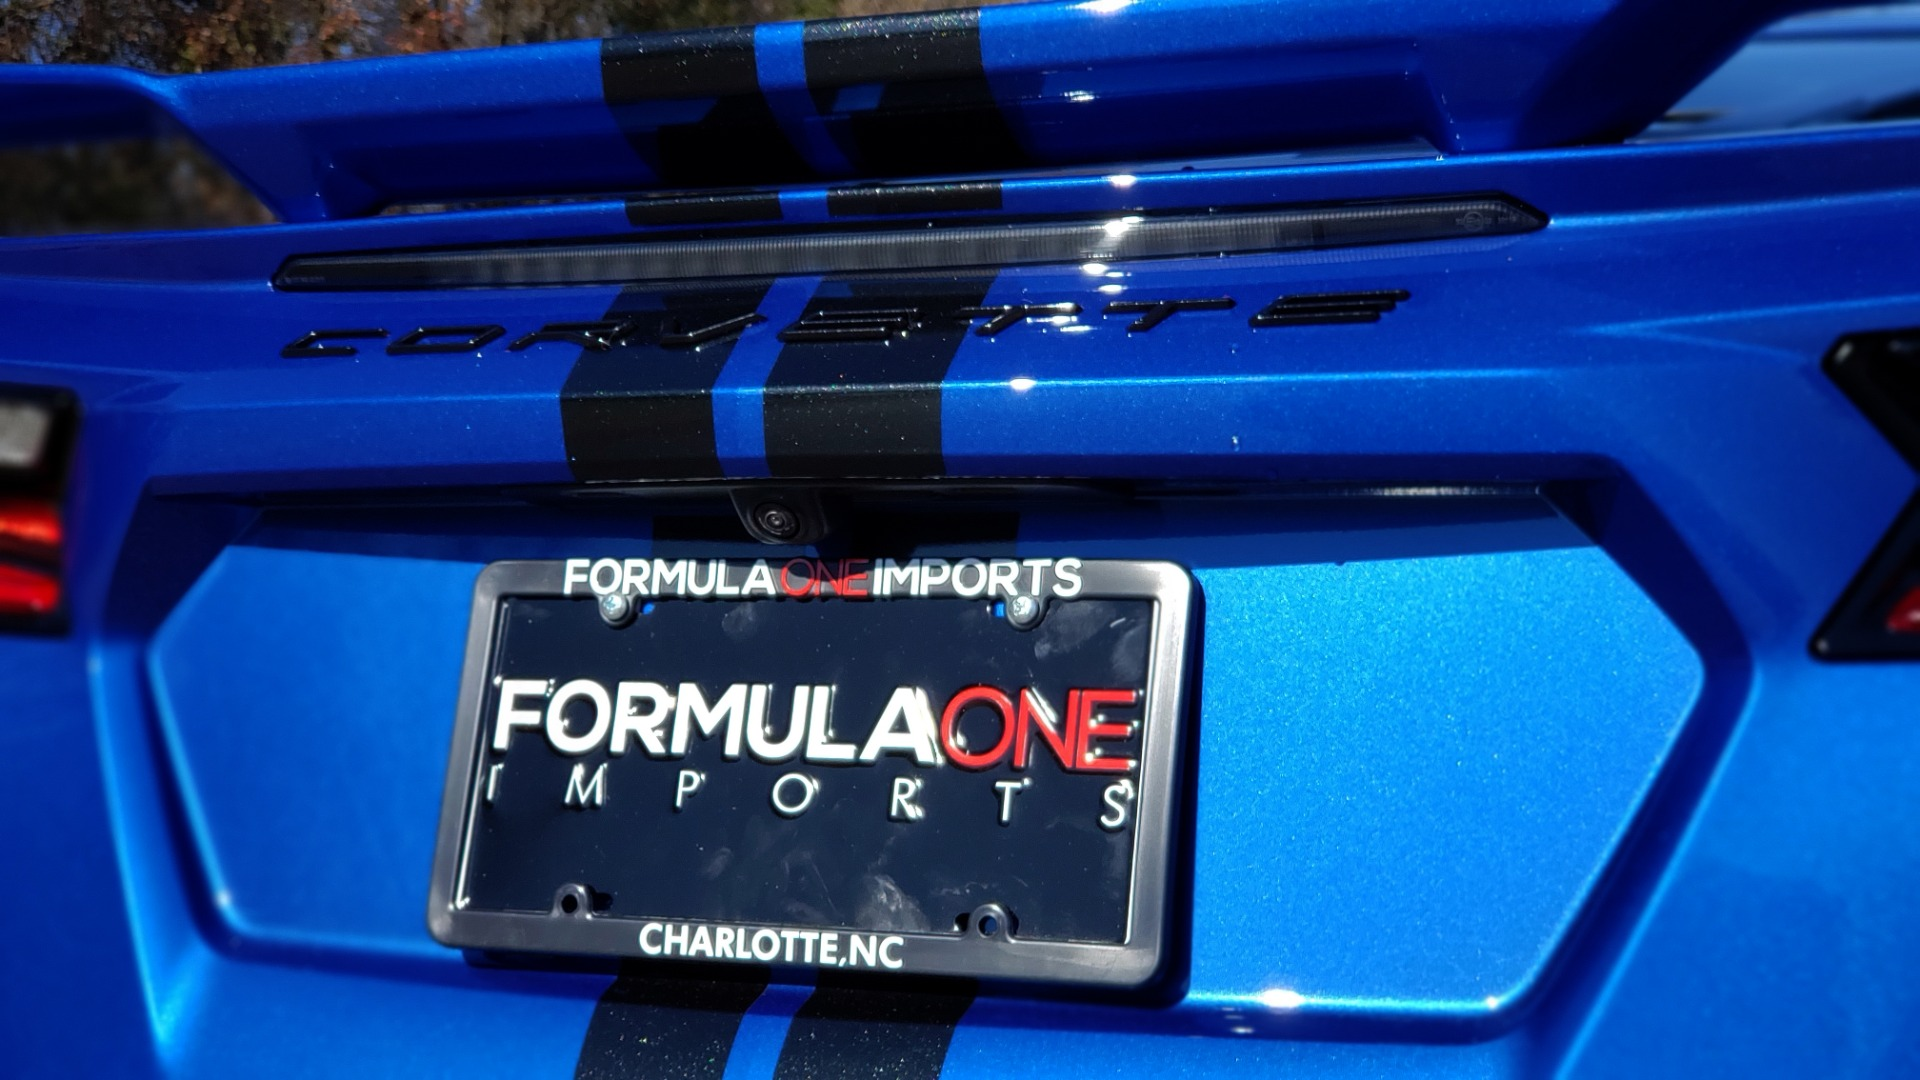 Used 2020 Chevrolet C8 CORVETTE STINGRAY 2LT COUPE / NAV / HUD / BOSE / GT2 SEATS / FRONT LIFT / REARVIEW for sale Sold at Formula Imports in Charlotte NC 28227 30